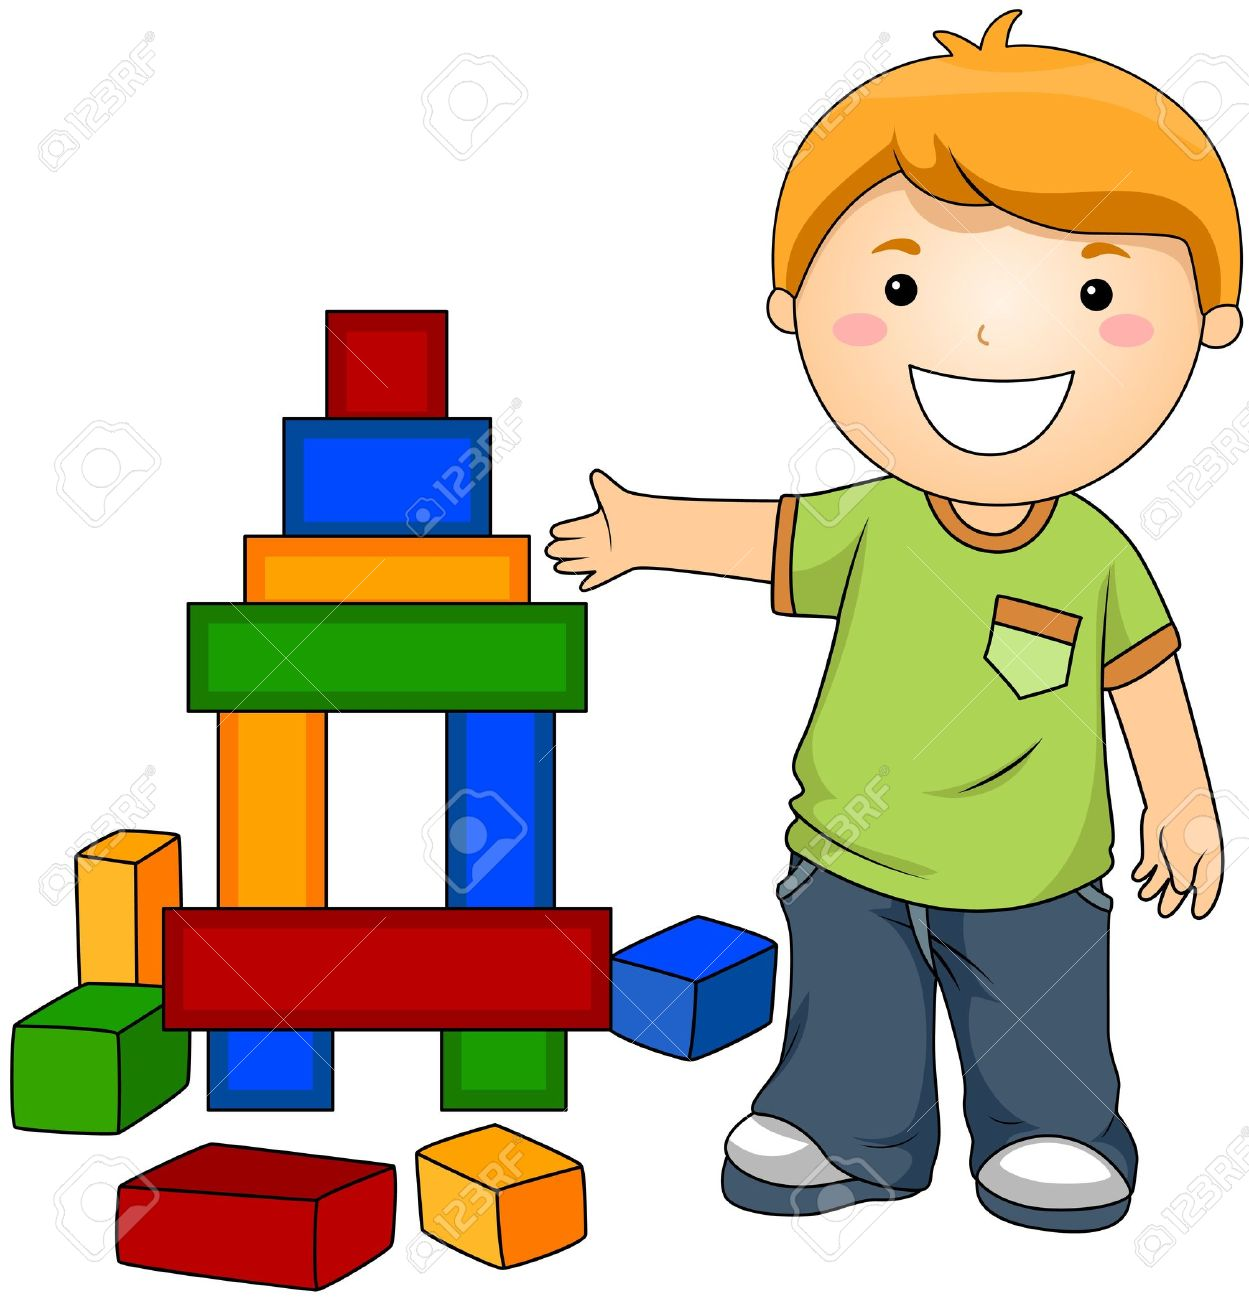 Toys Clipart | Free download best Toys Clipart on ...